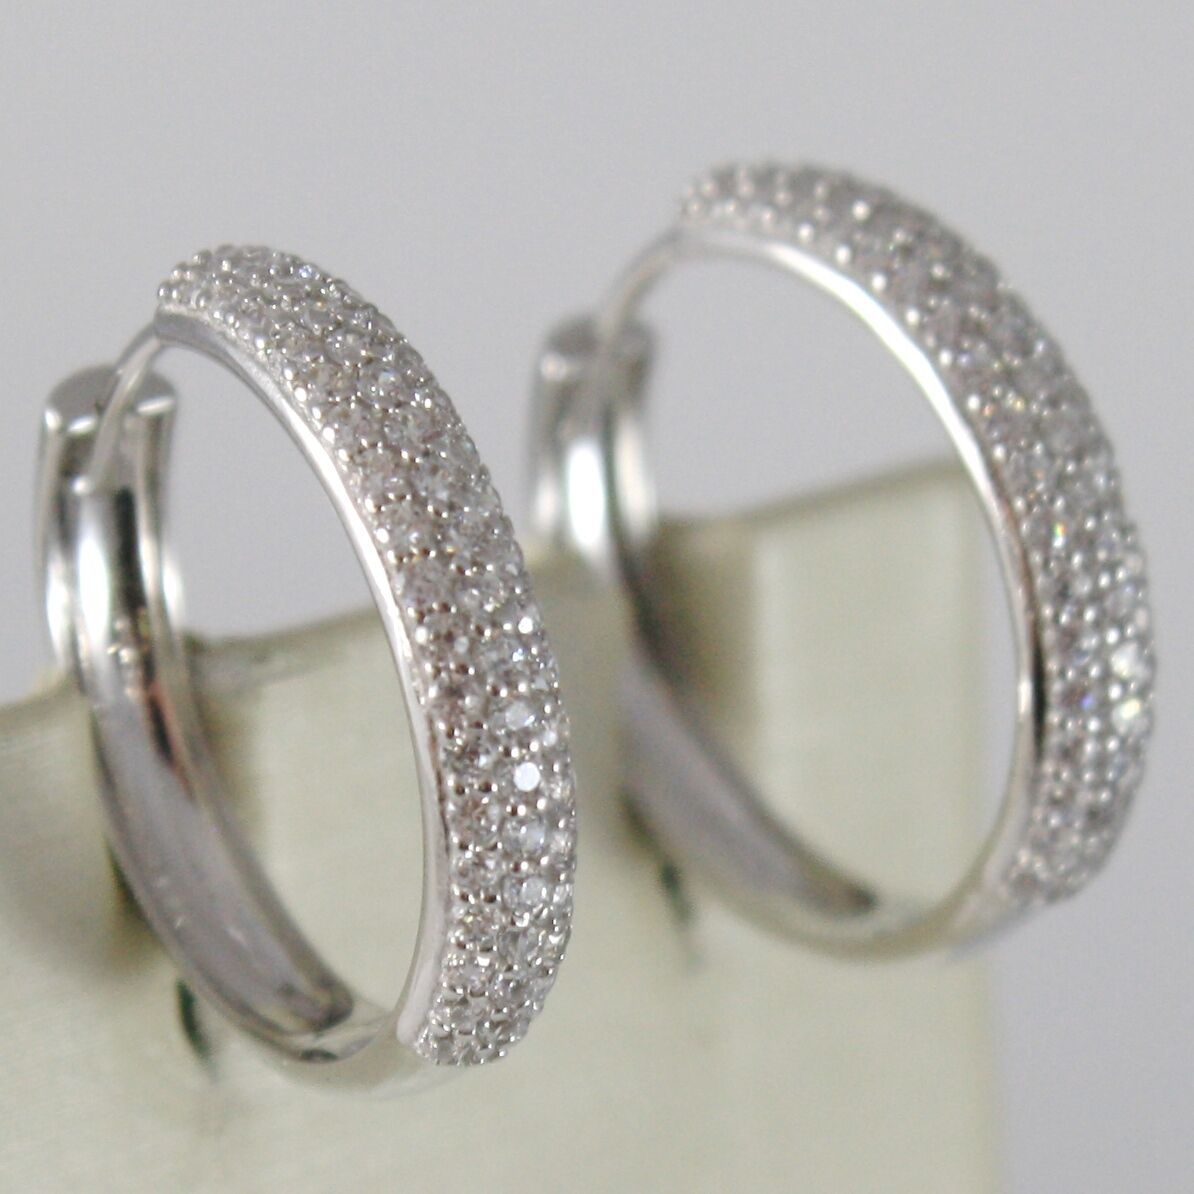 White Gold Earrings 750 18K Circle, Diameter 2 cm, Triple Row Zircon, 3 MM